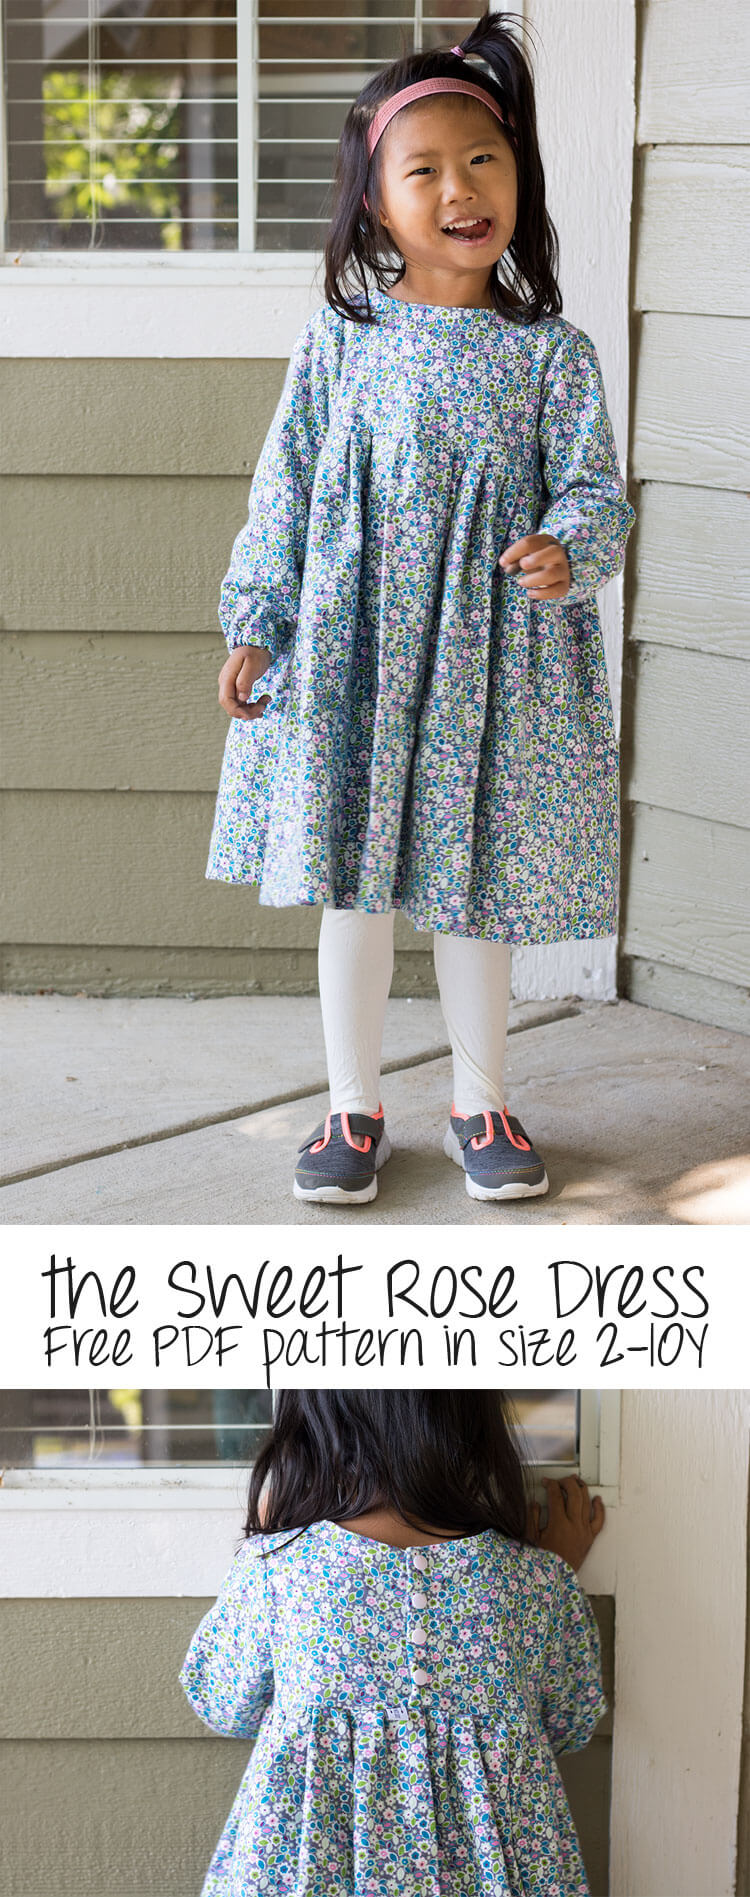 free dress pattern - sweet rose dress for girls size 2-10 from Life Sew Savory